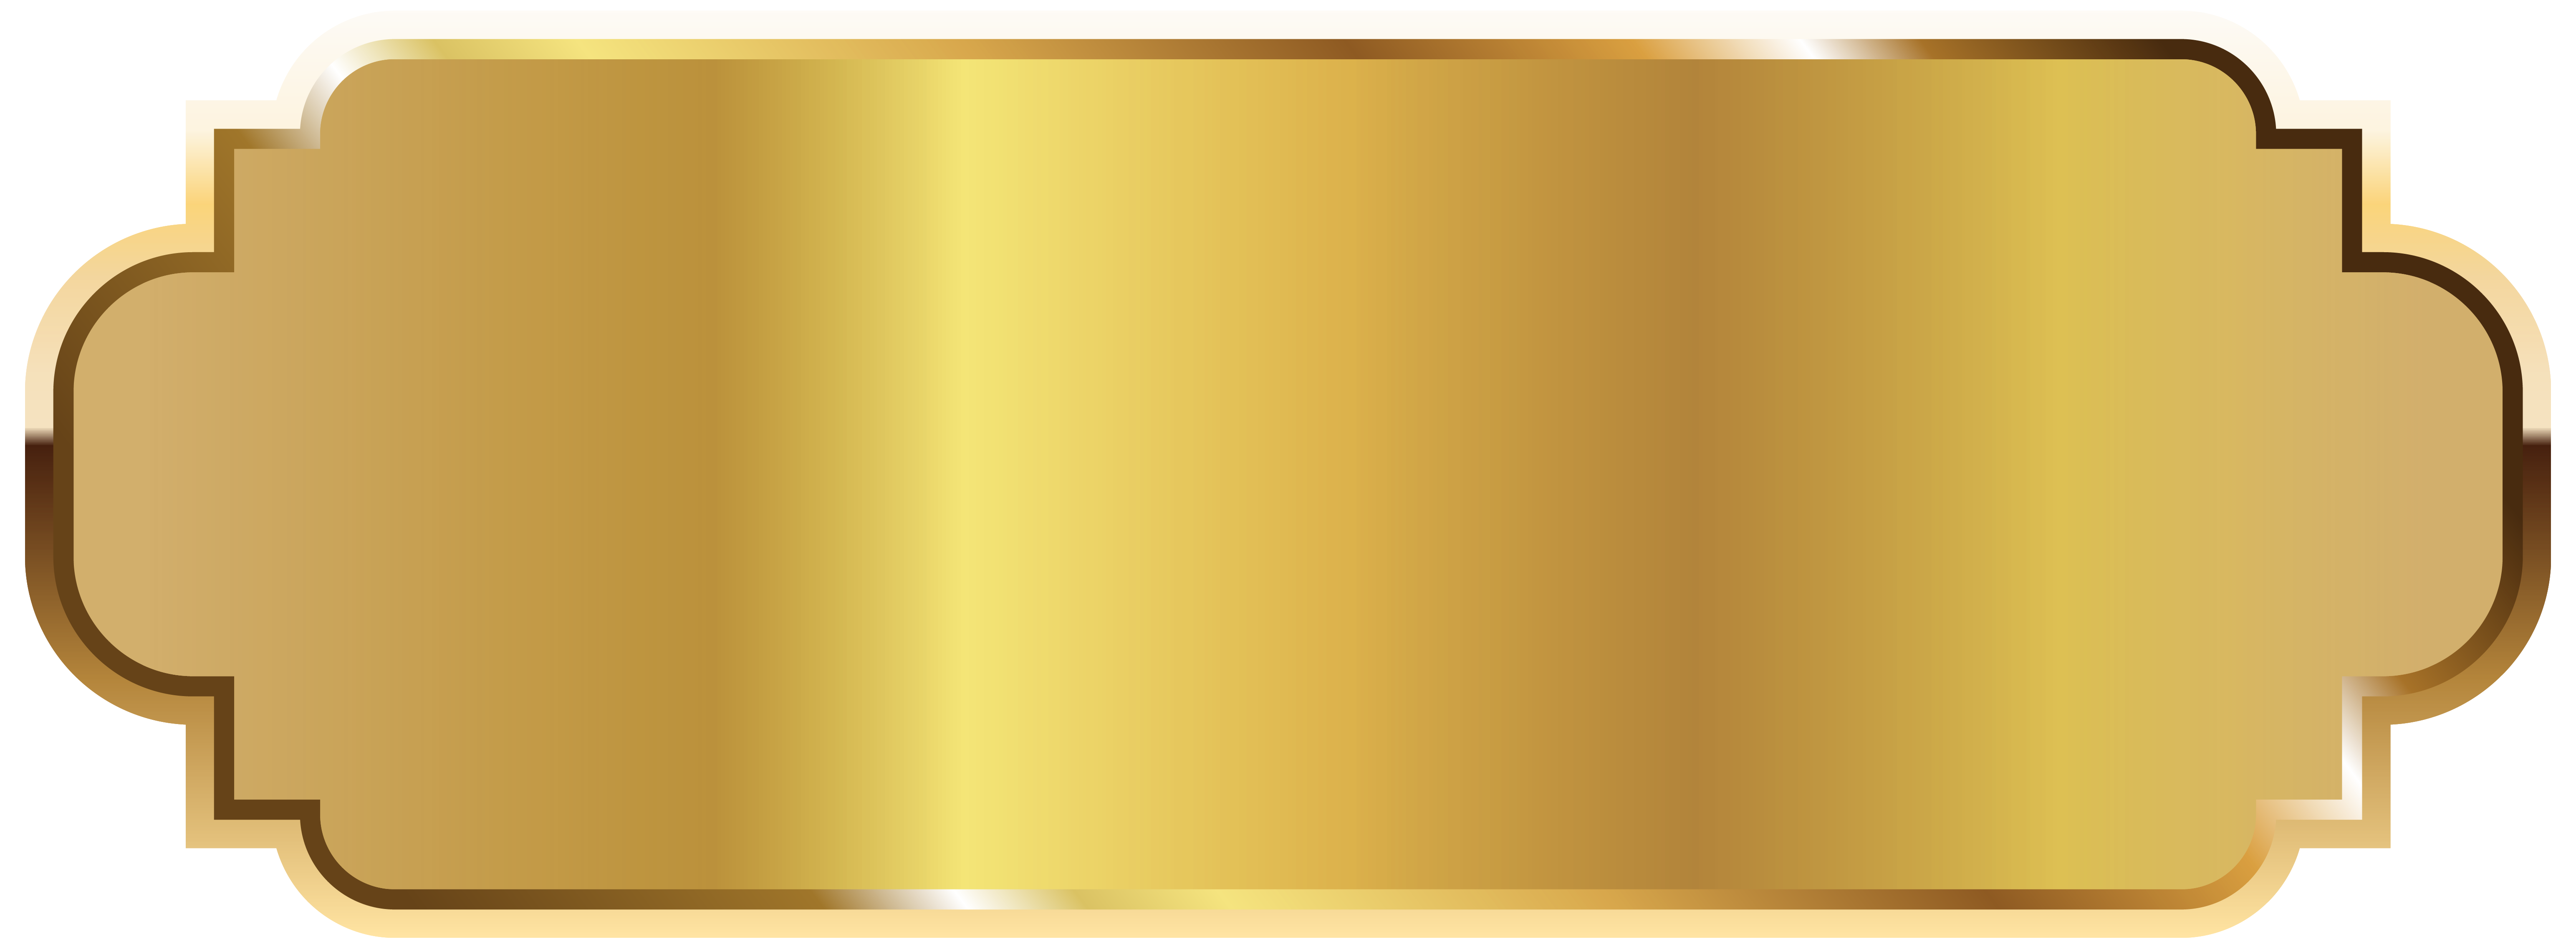 Lock clipart golden. Label template png picture